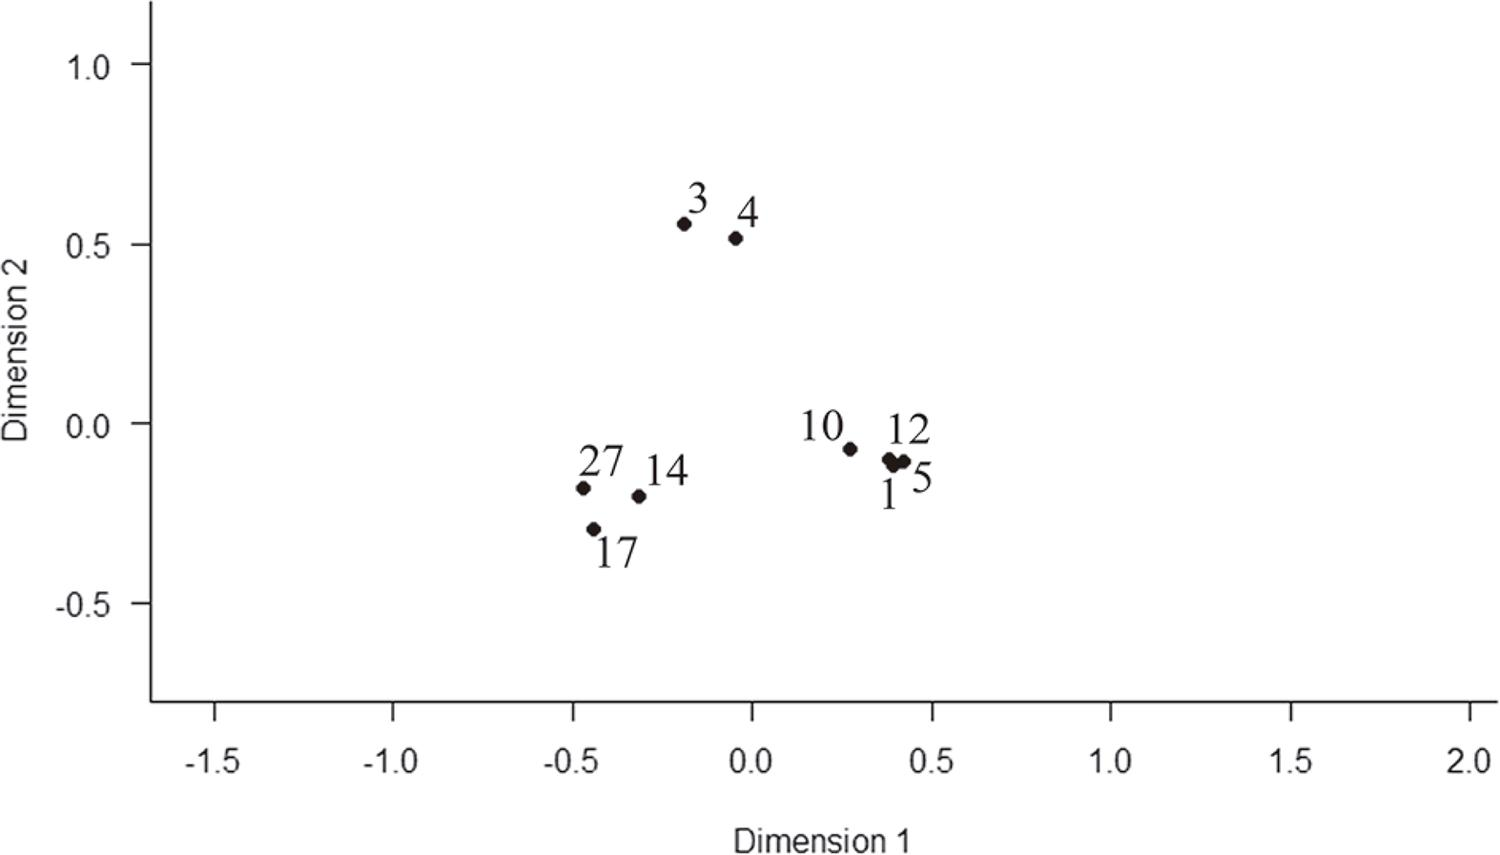 Diversity analysis of the snail community using non-metric Multidimensional scaling for each sampling point in São Gonçalo, Rio de Janeiro State, Brazil.